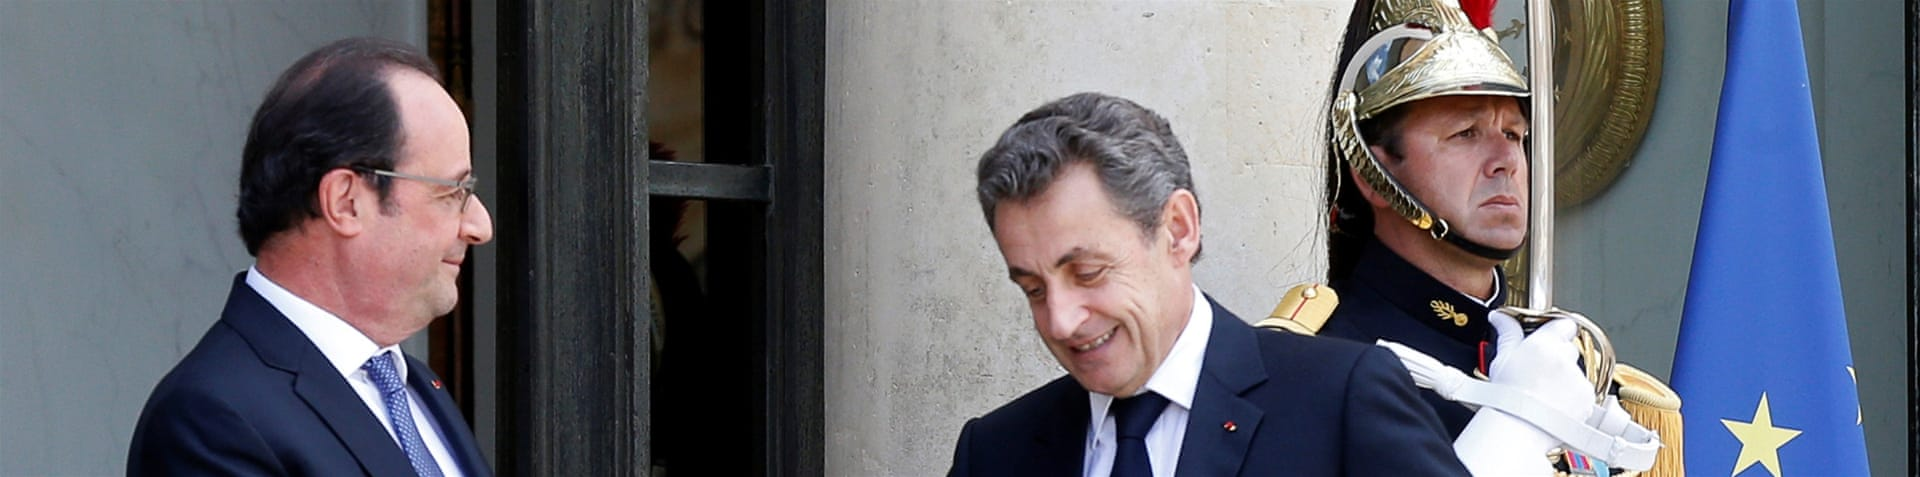 Sarkozy ended a five-year term in 2012 mired in unpopularity [Vincent Kessler/Reuters file]